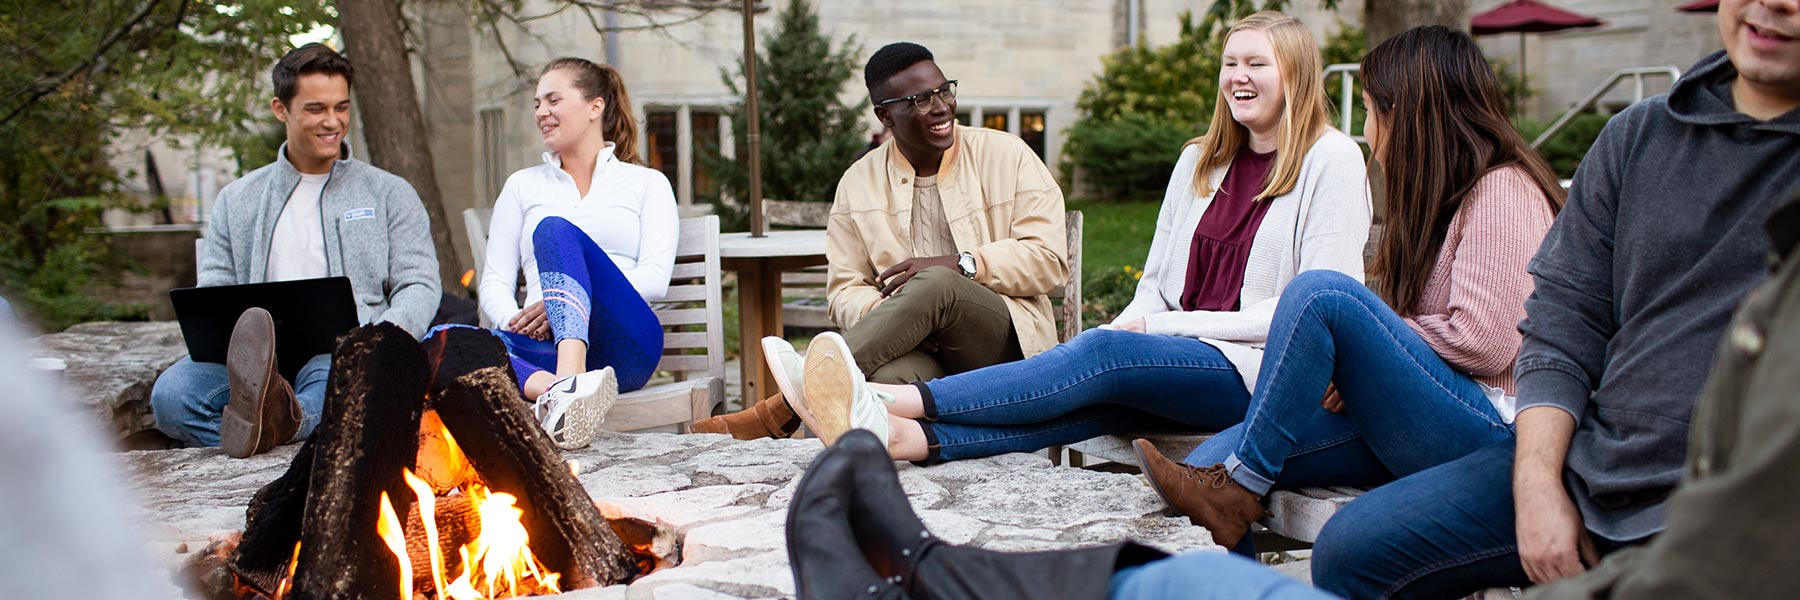 Students sitting around a fire pit